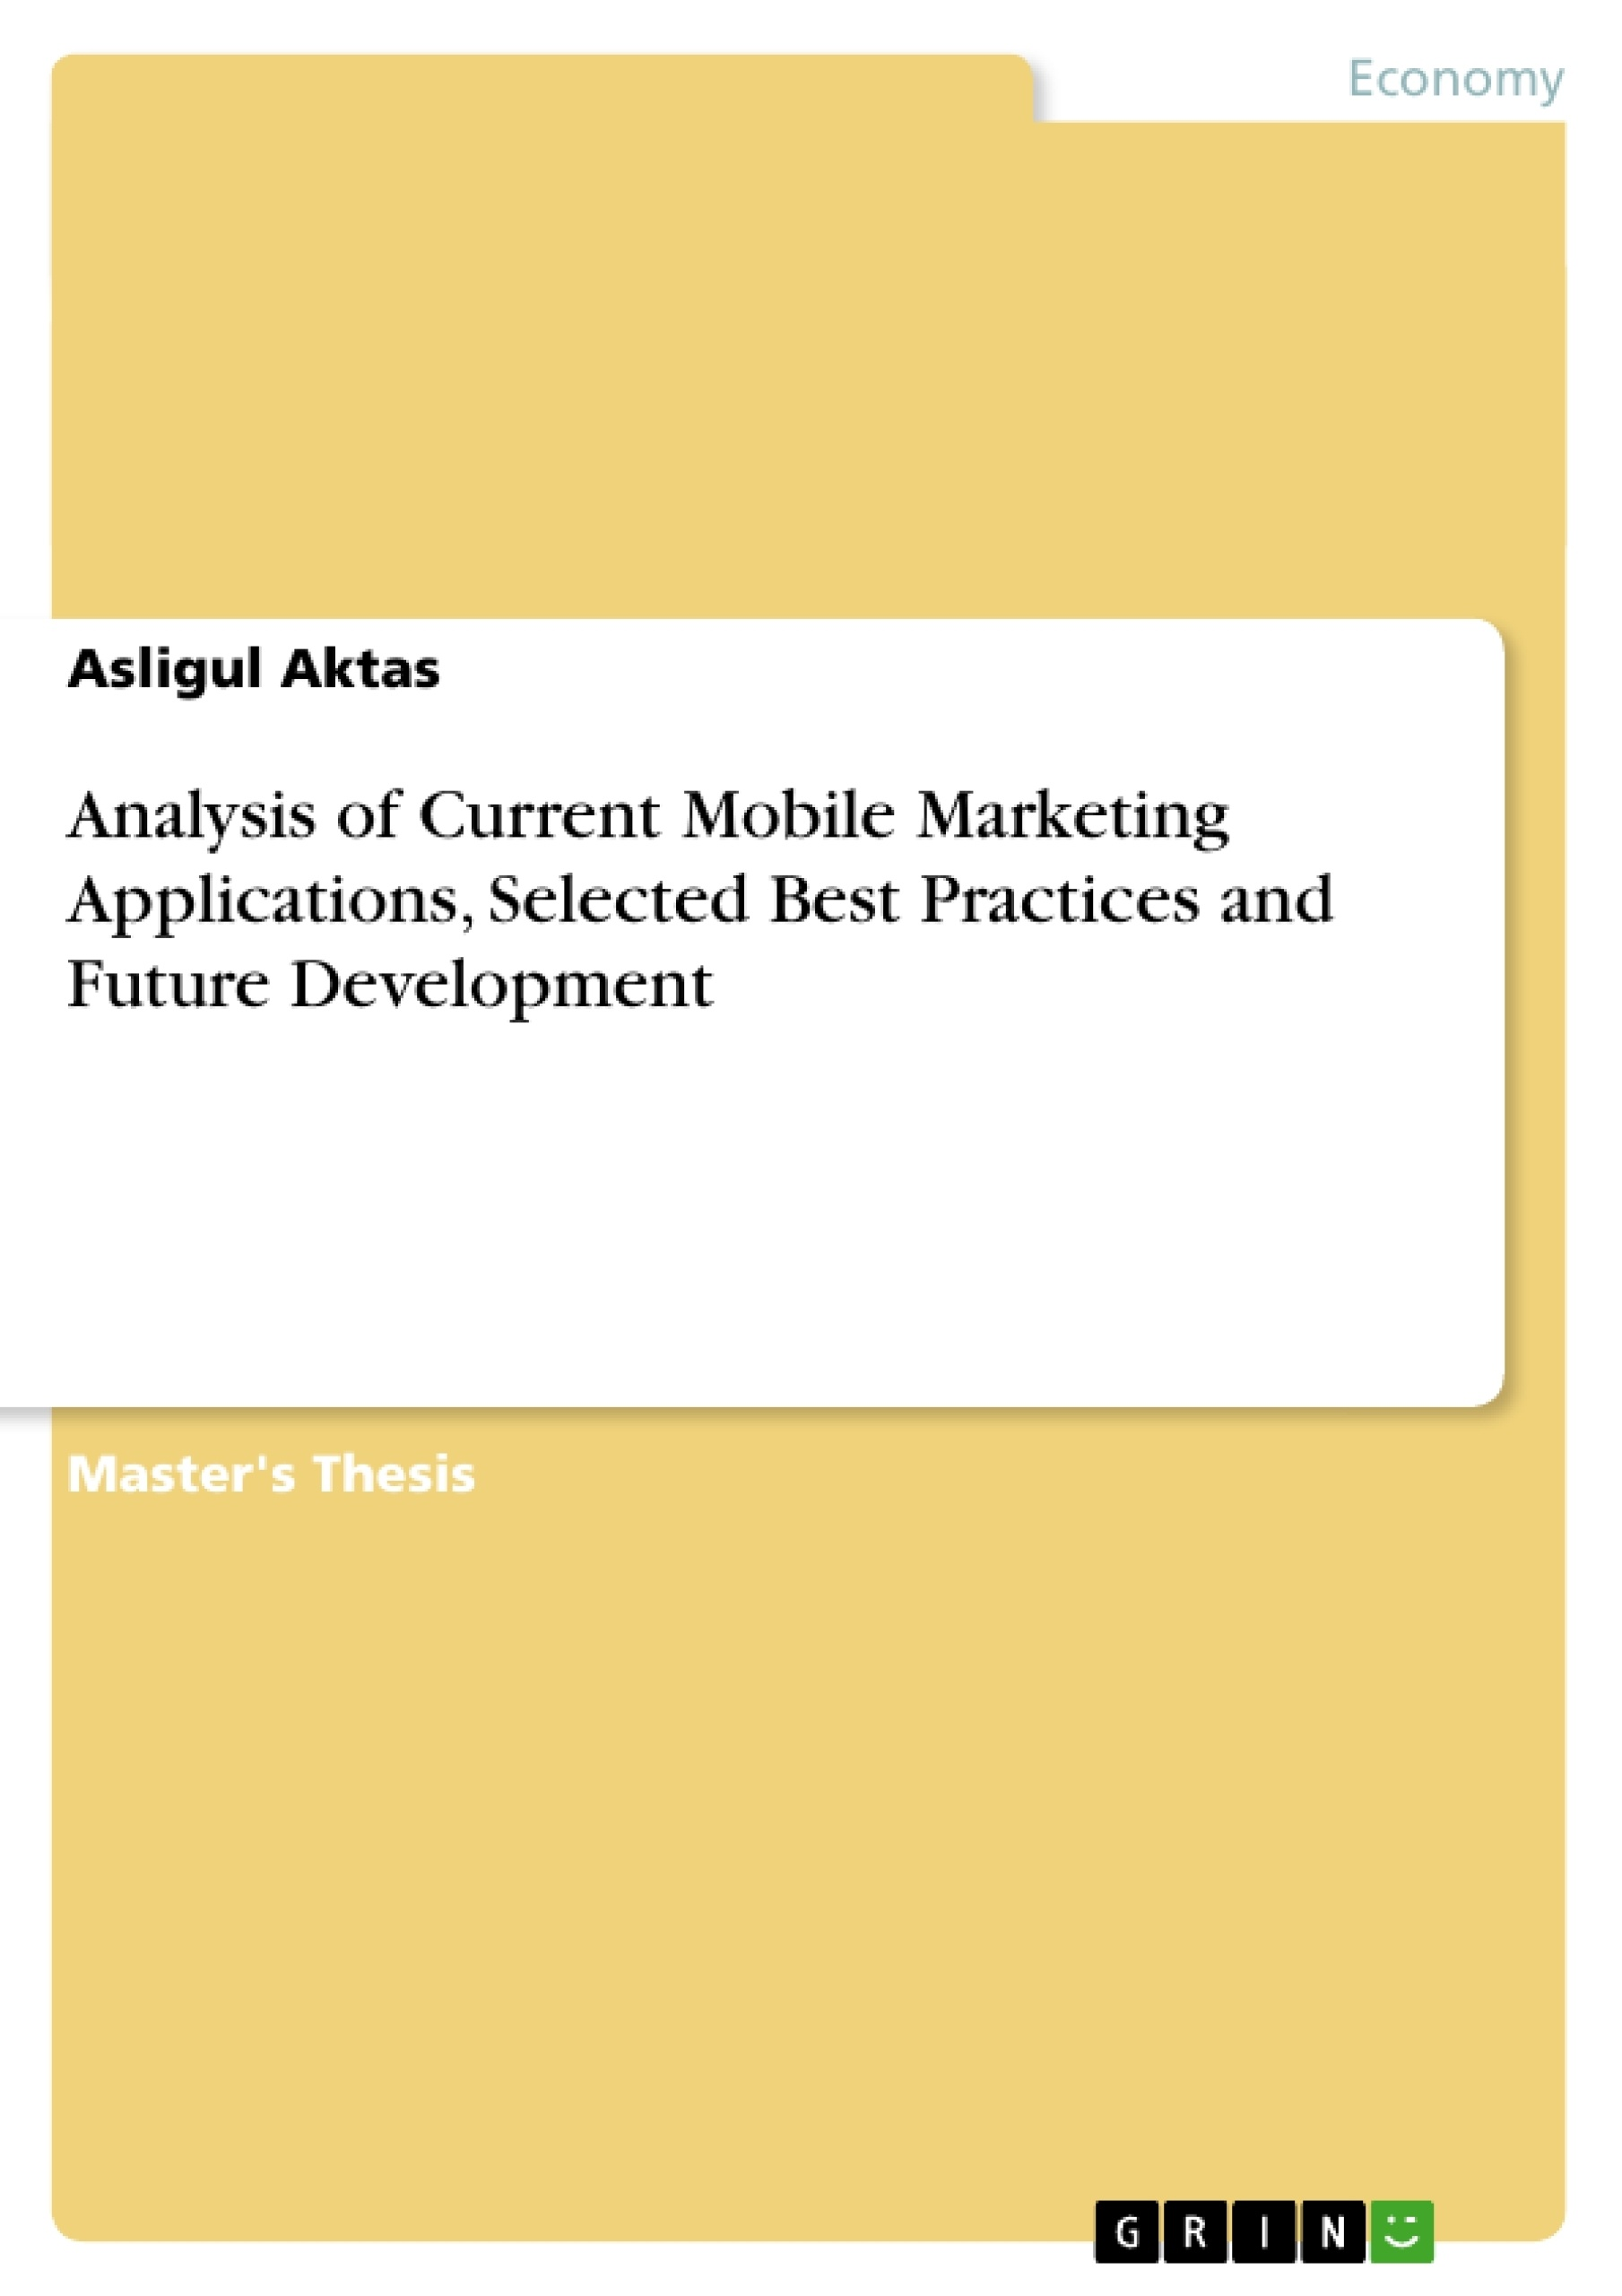 Title: Analysis of Current Mobile Marketing Applications, Selected Best Practices and Future Development